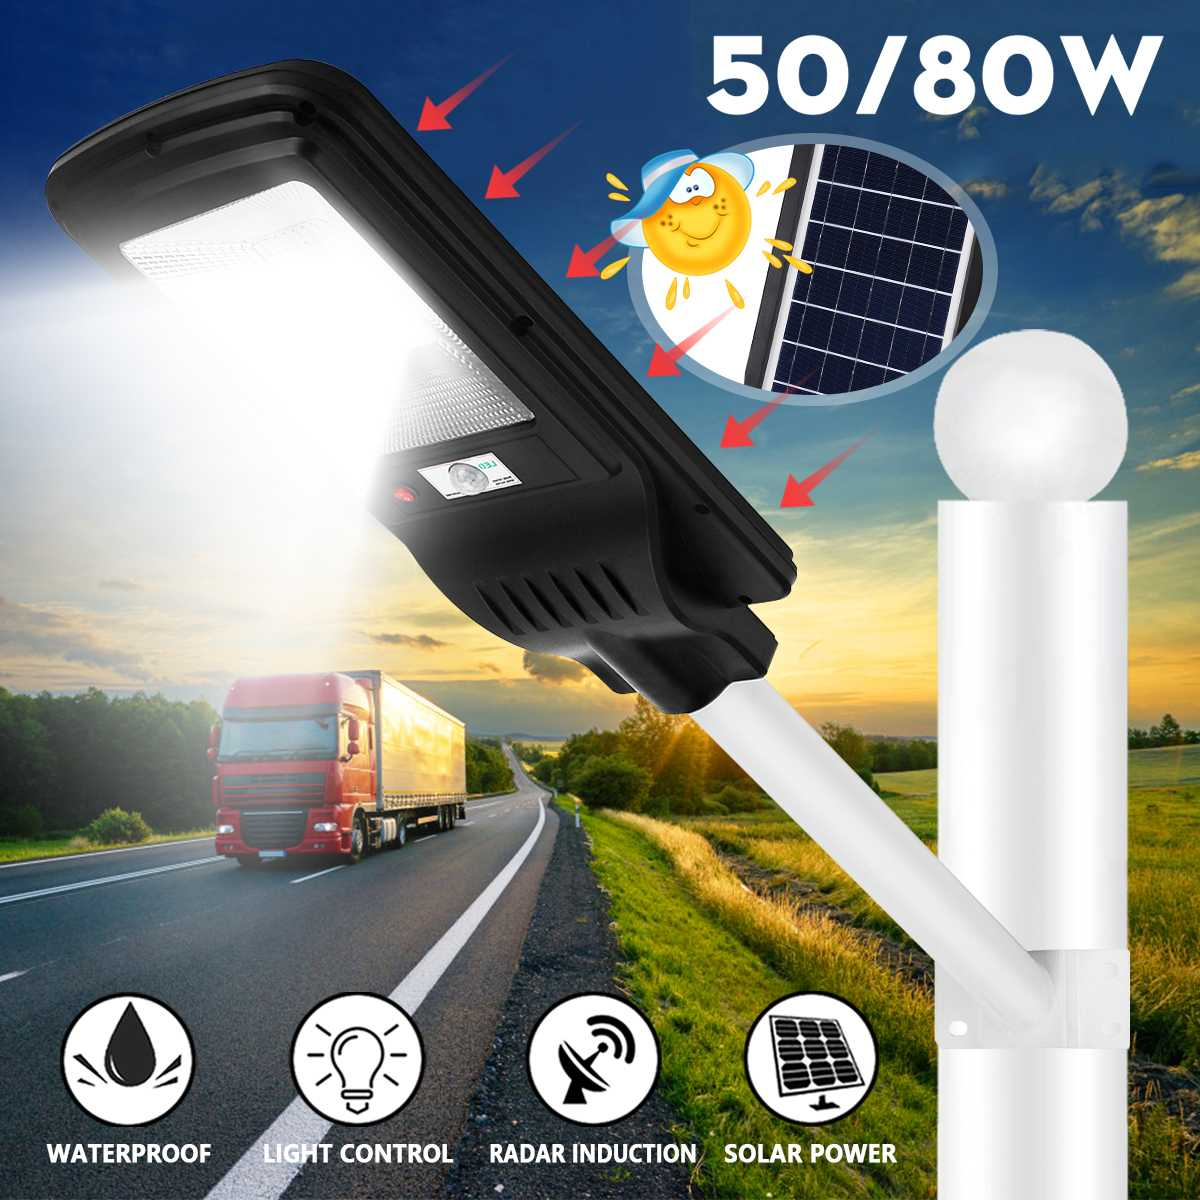 50/80W LED Street Light LED Solar Street Light or Mounting pole Waterproof Road Garden Lamp Street Flood Light Courtyard lamp